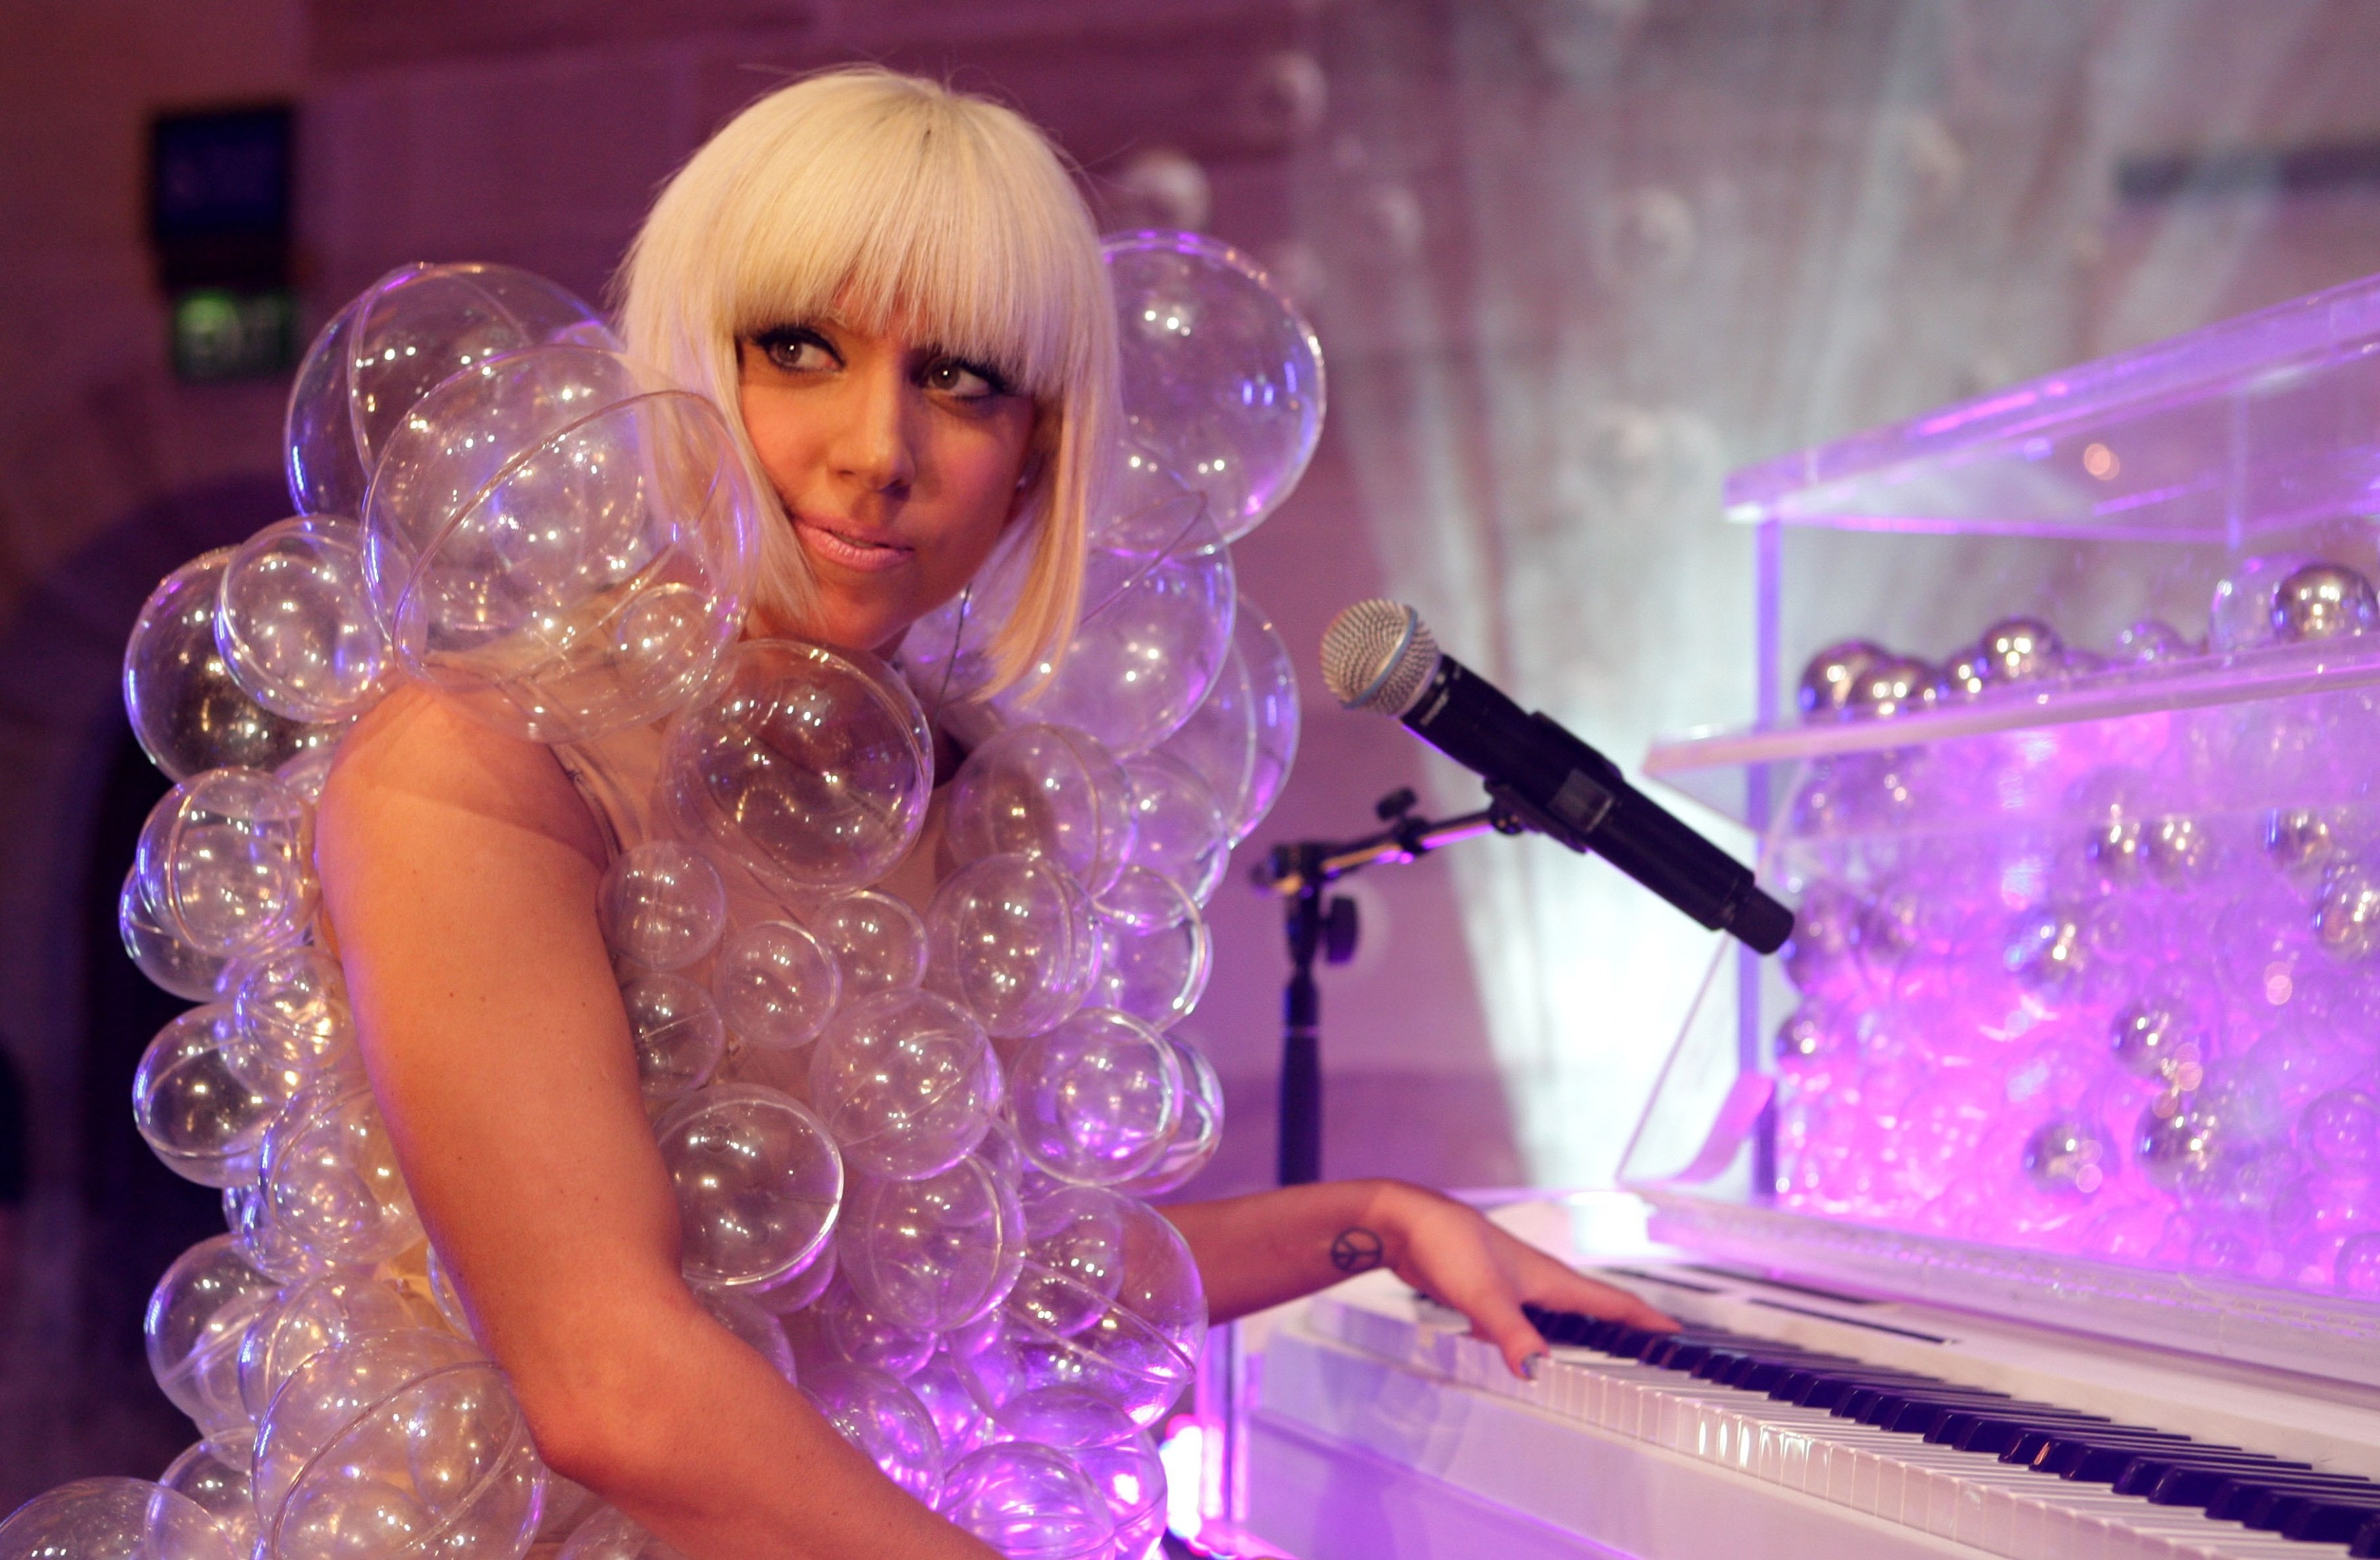 Lady Gaga in concert, Sydney, Australia - 25 May 2009